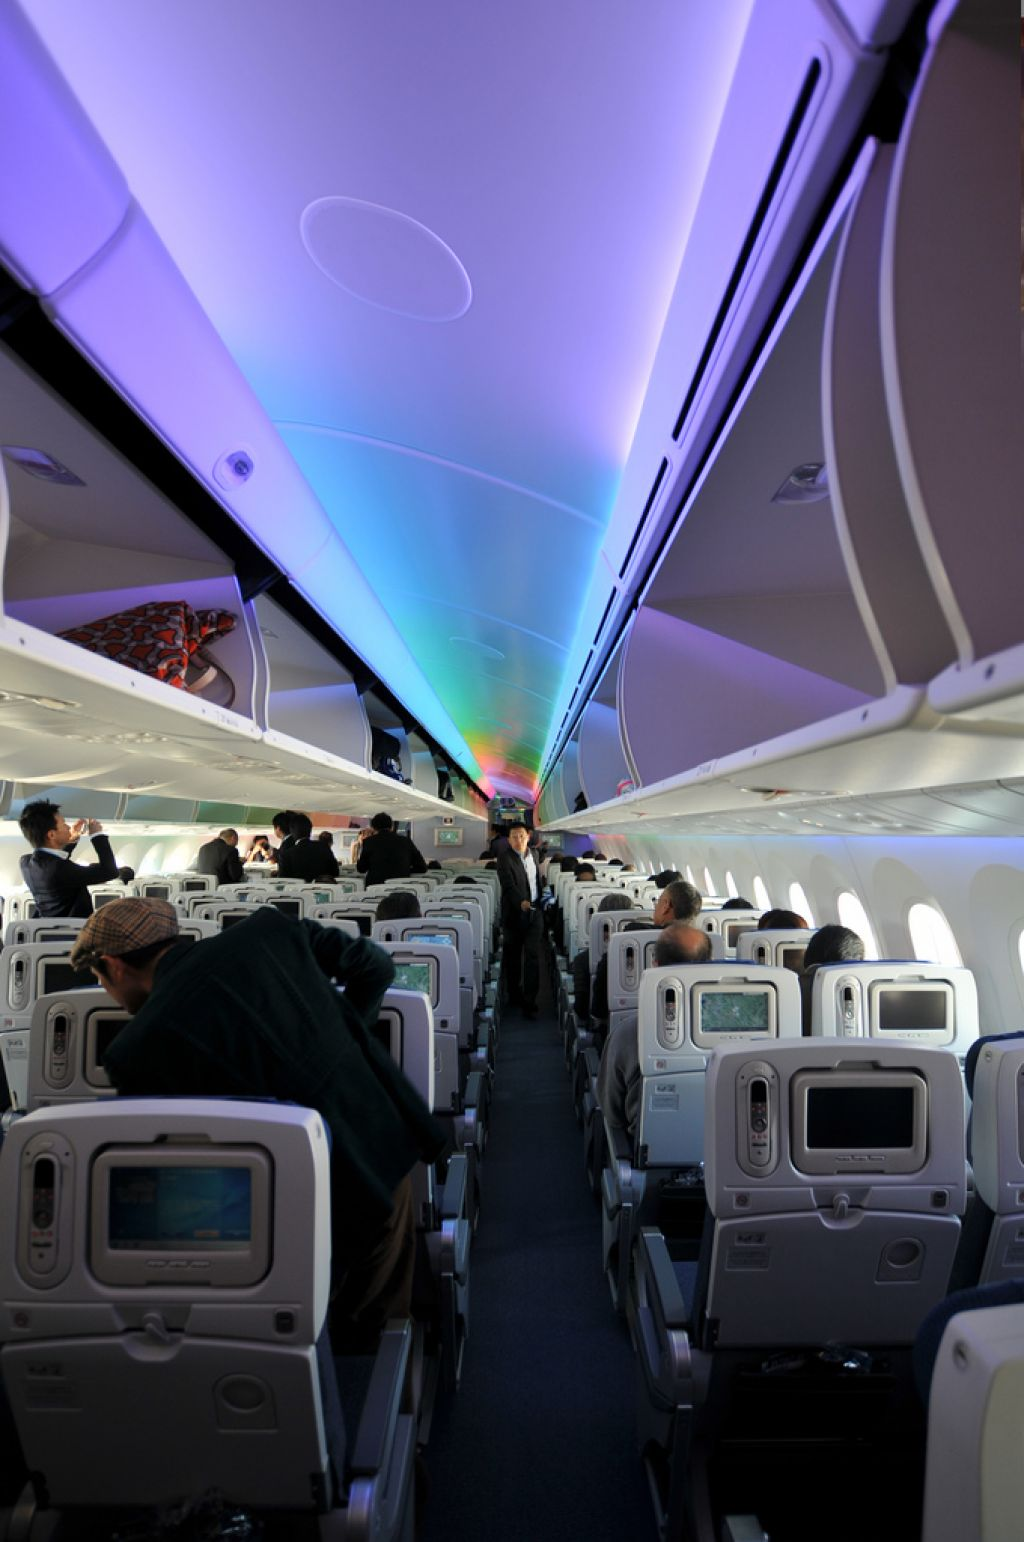 dream liner 7871 Inside Boeing Dreamliner 787